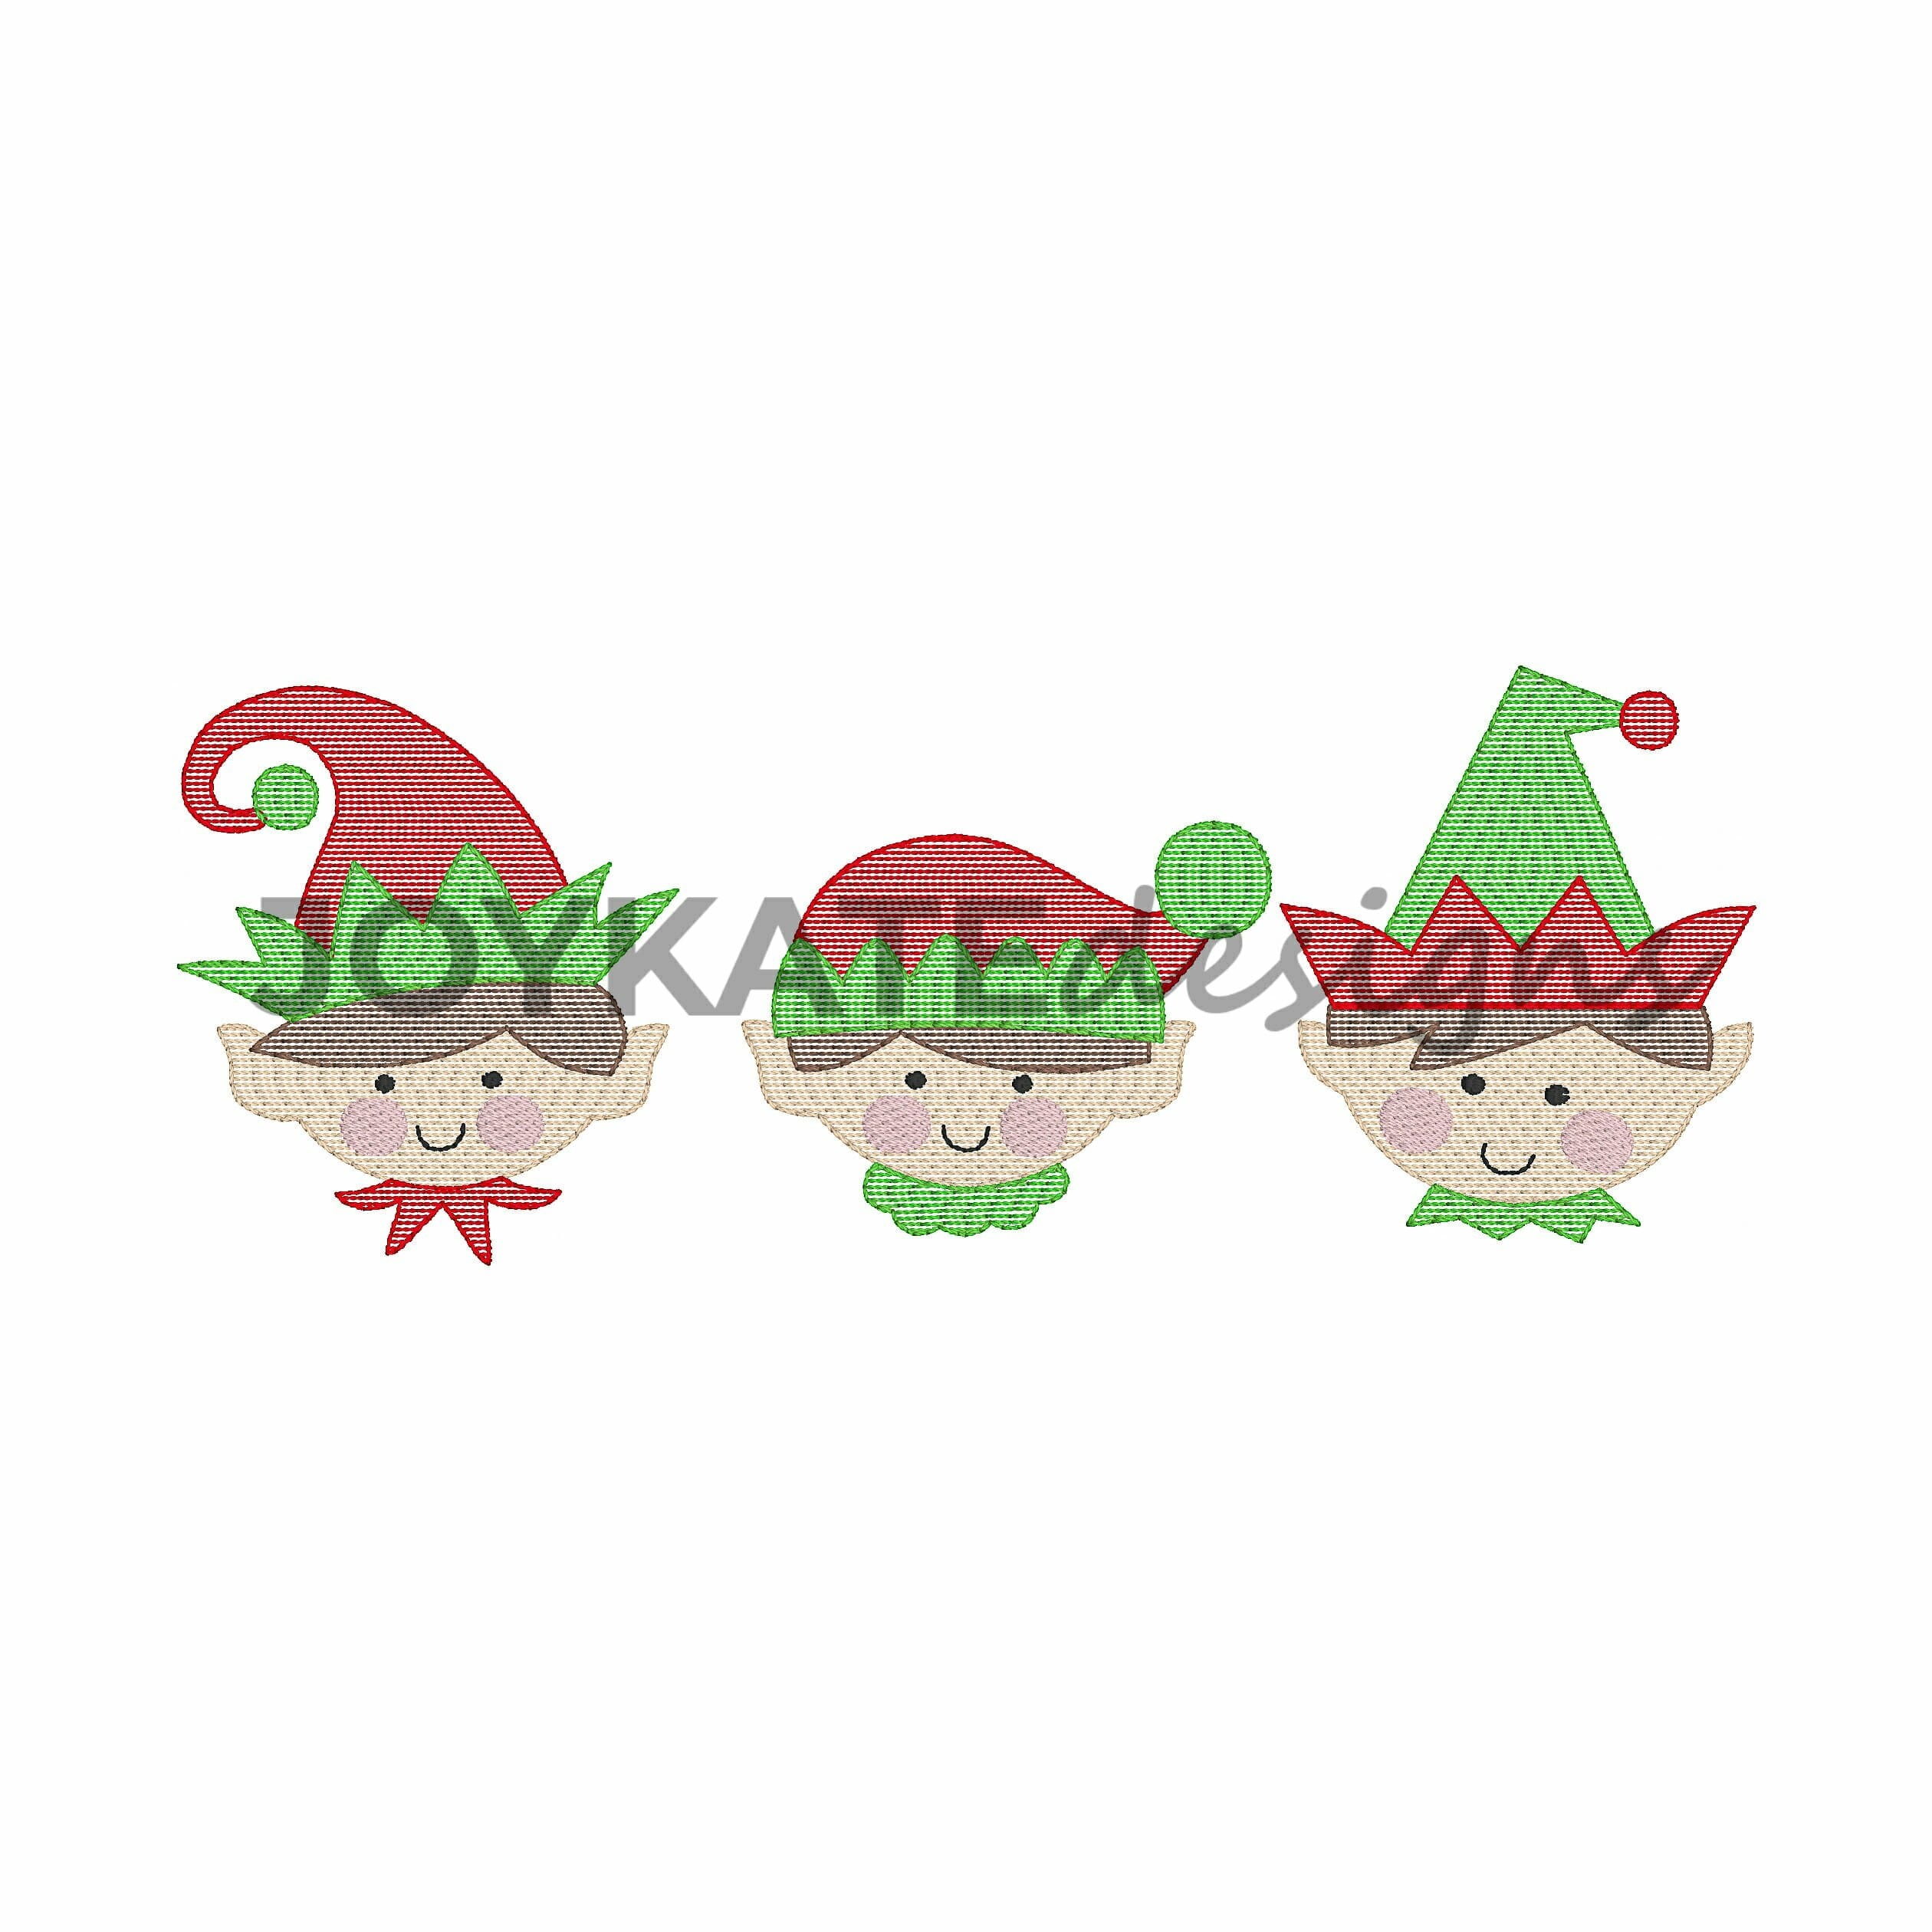 Boy elf trio vintage embroidery design joy kate designs